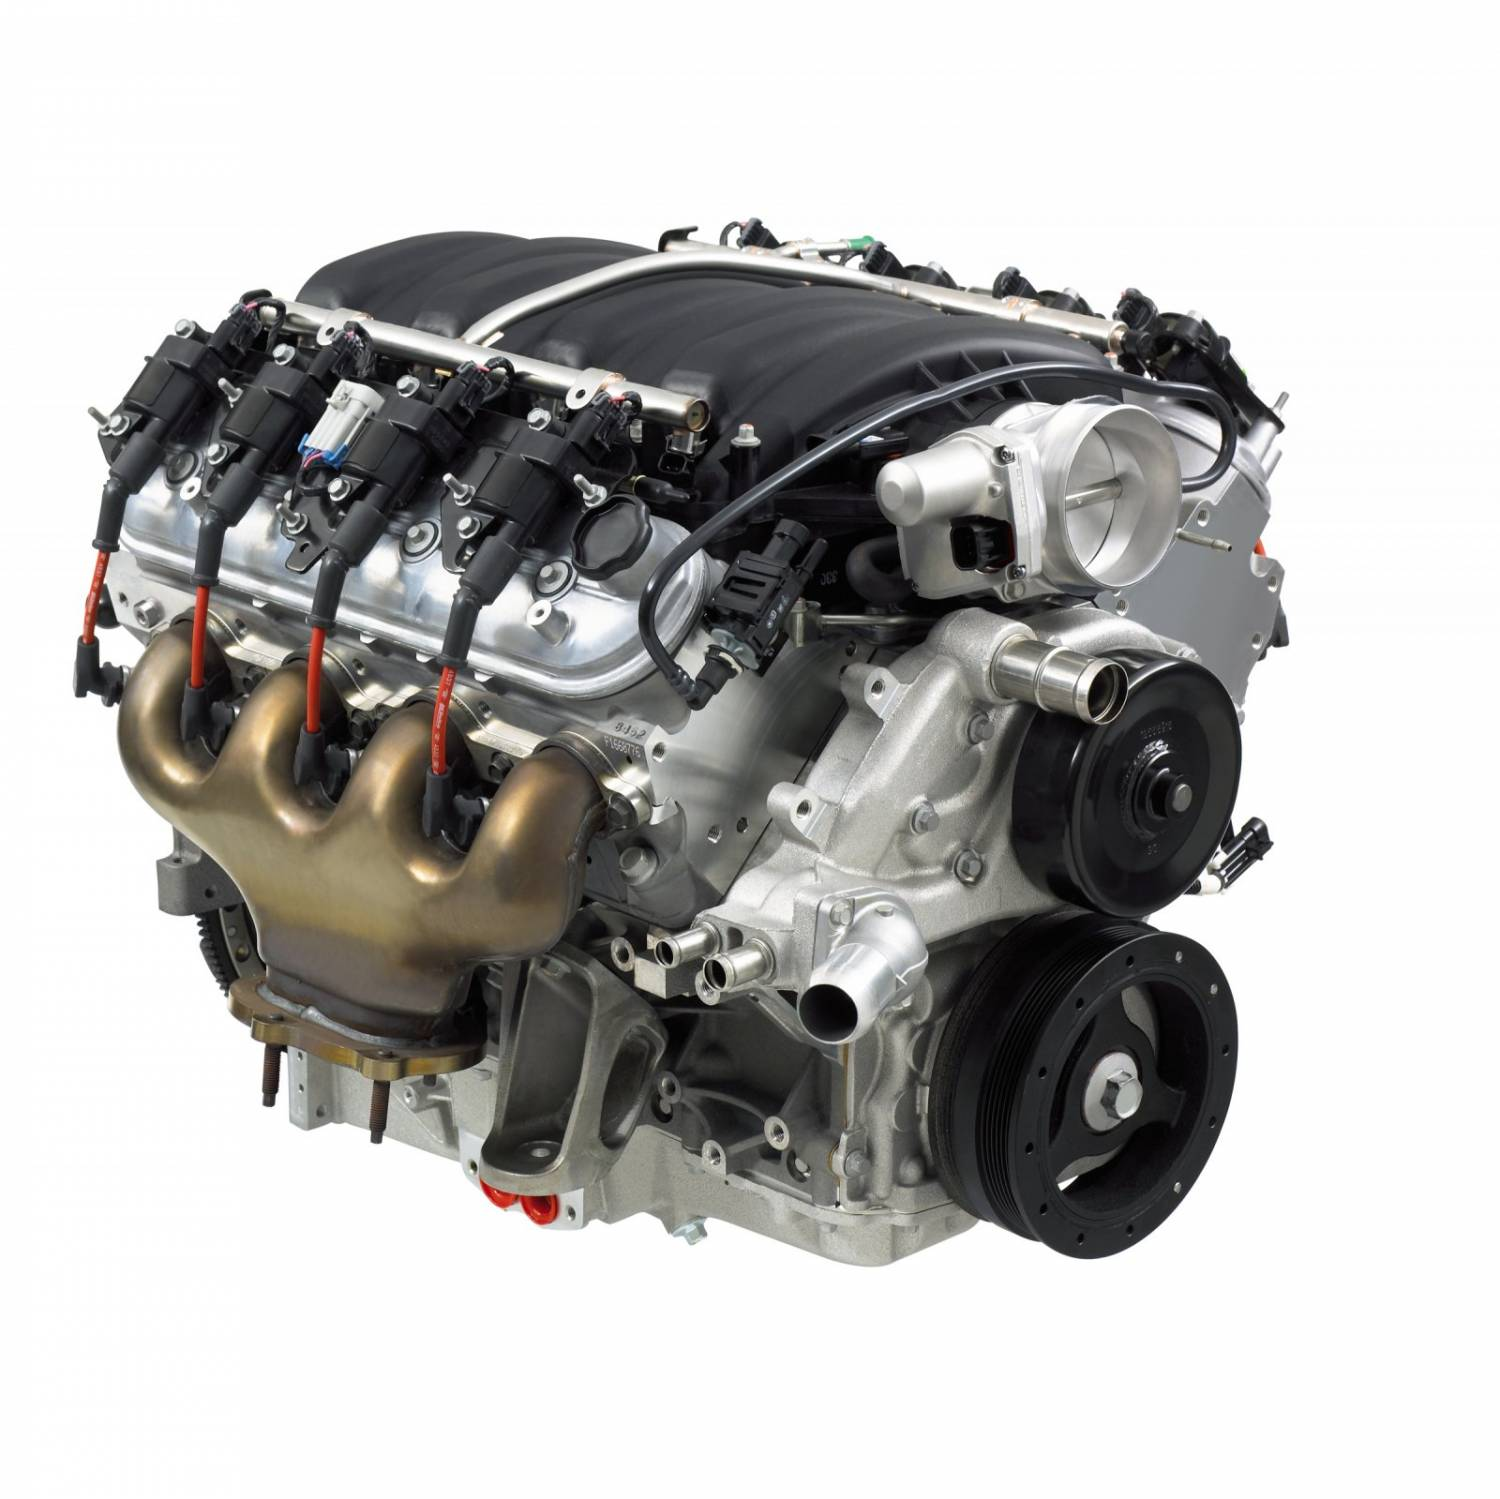 Ls1 Engine Transmission Package: Chevrolet Performance Parts